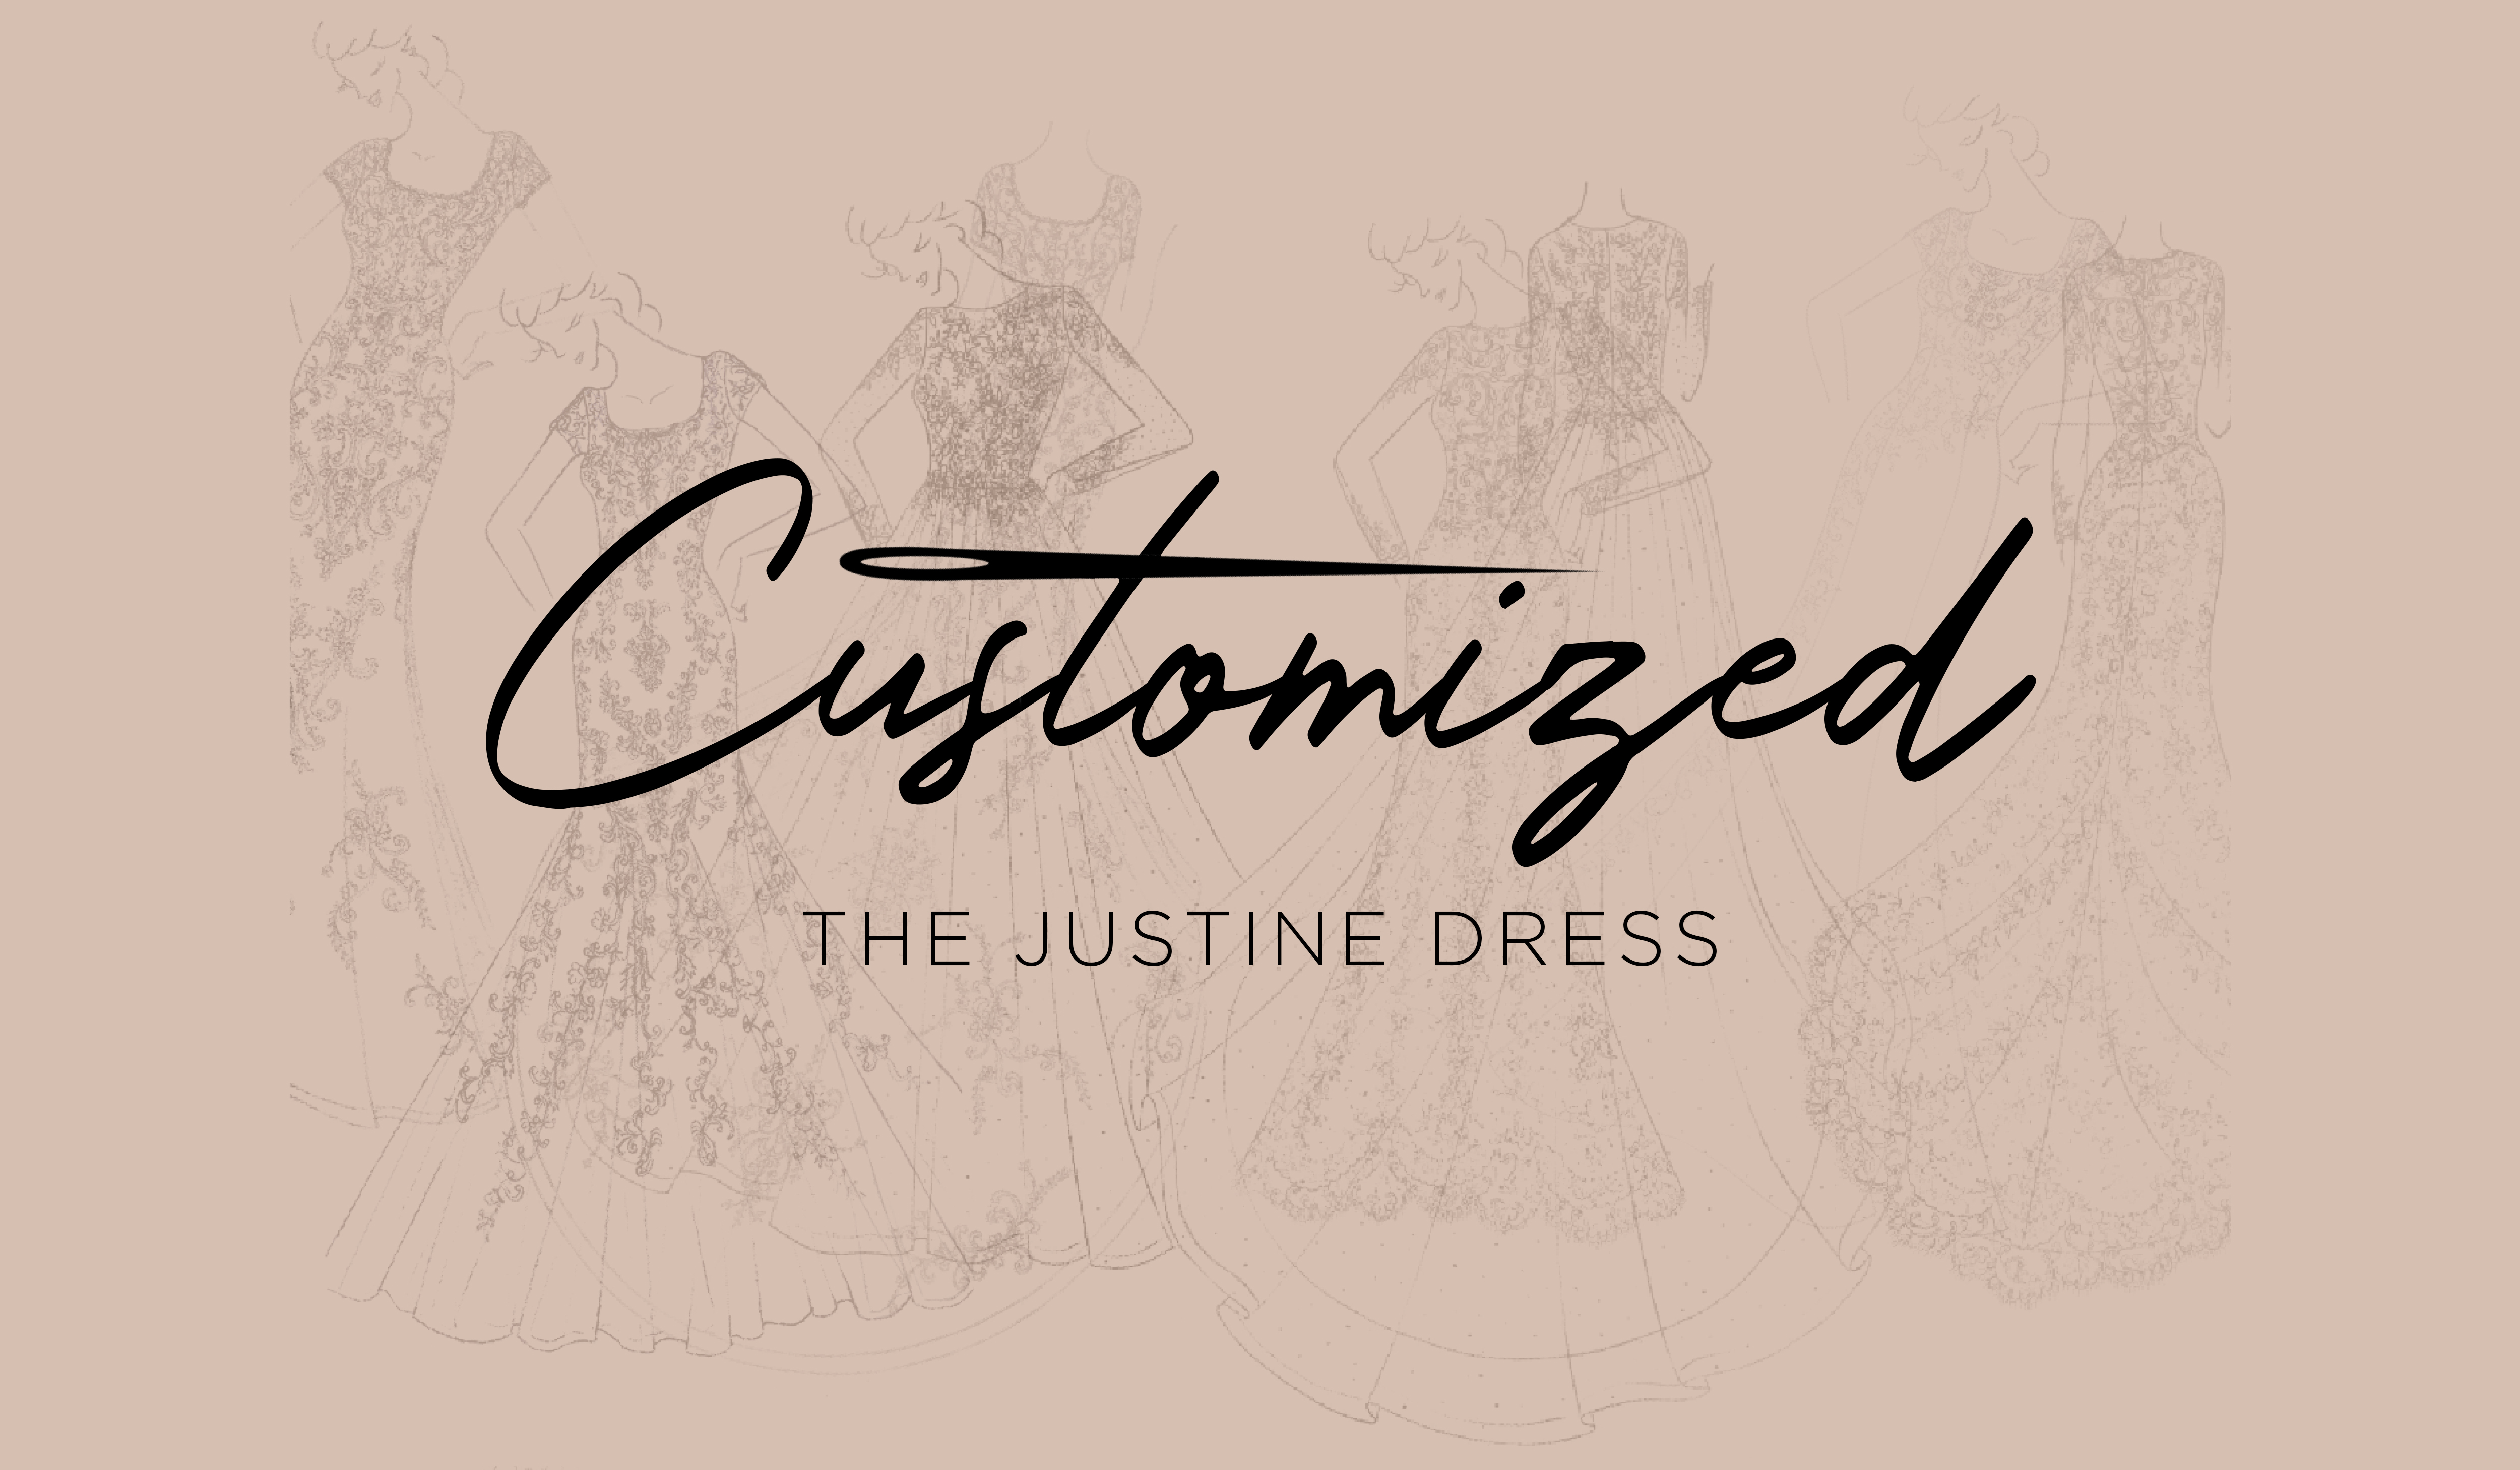 Casablanca Customized The Justine Dress